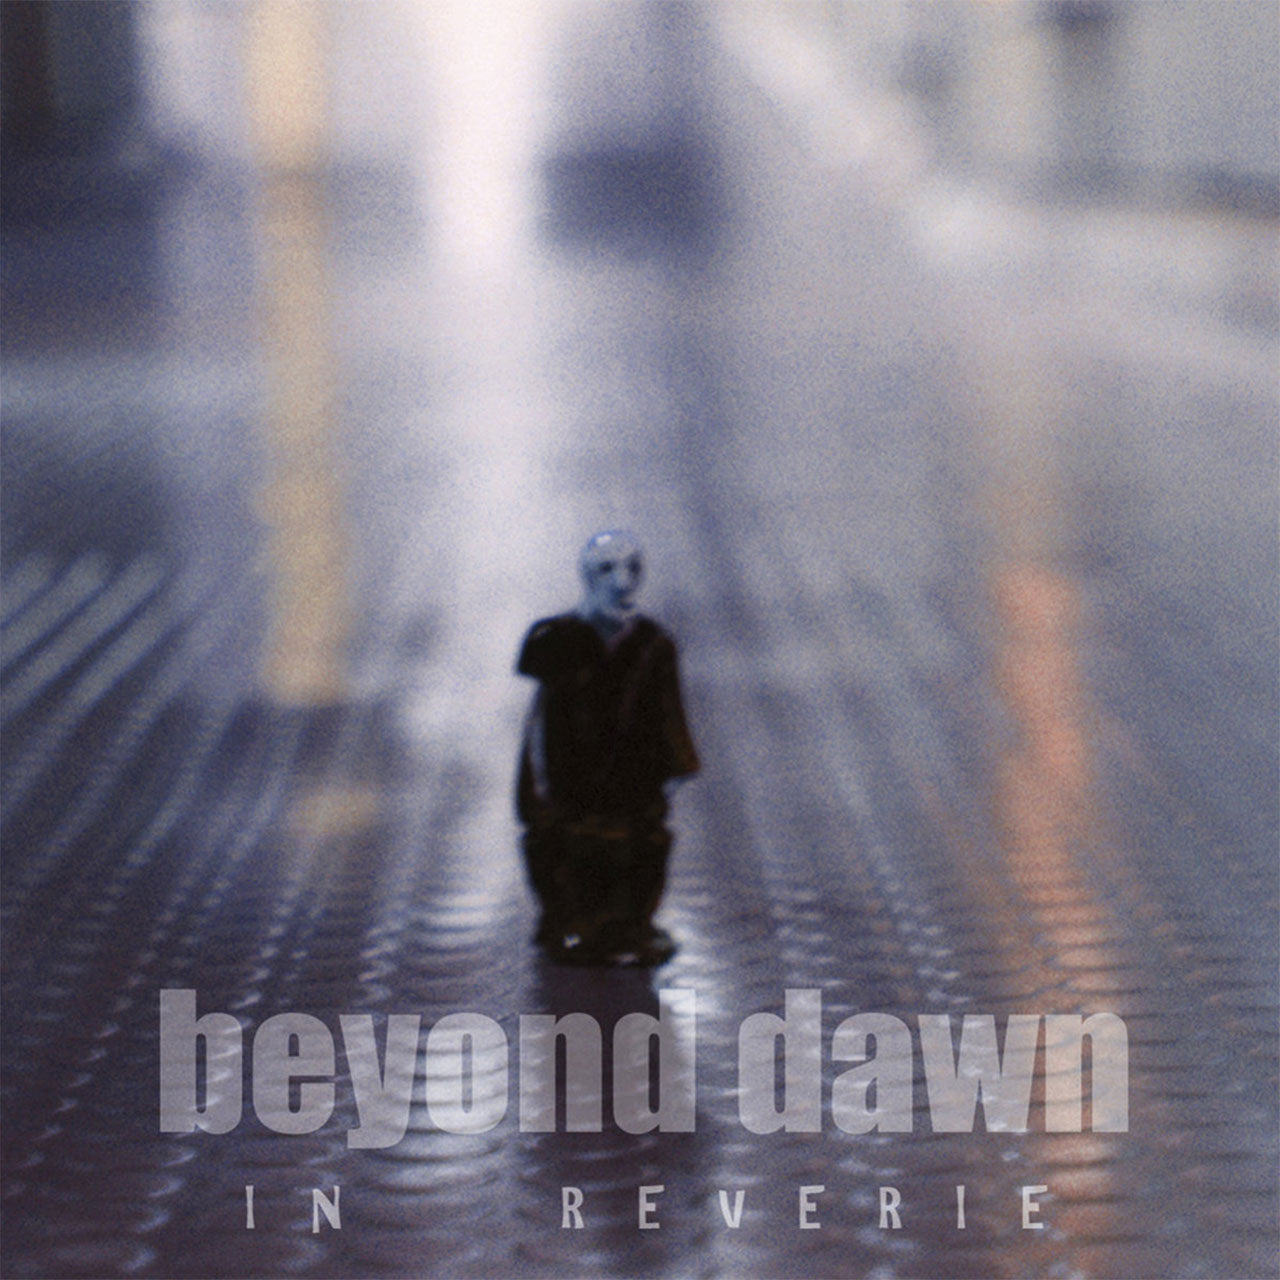 Beyond Dawn - In Reverie (2006 Reissue) (CD)